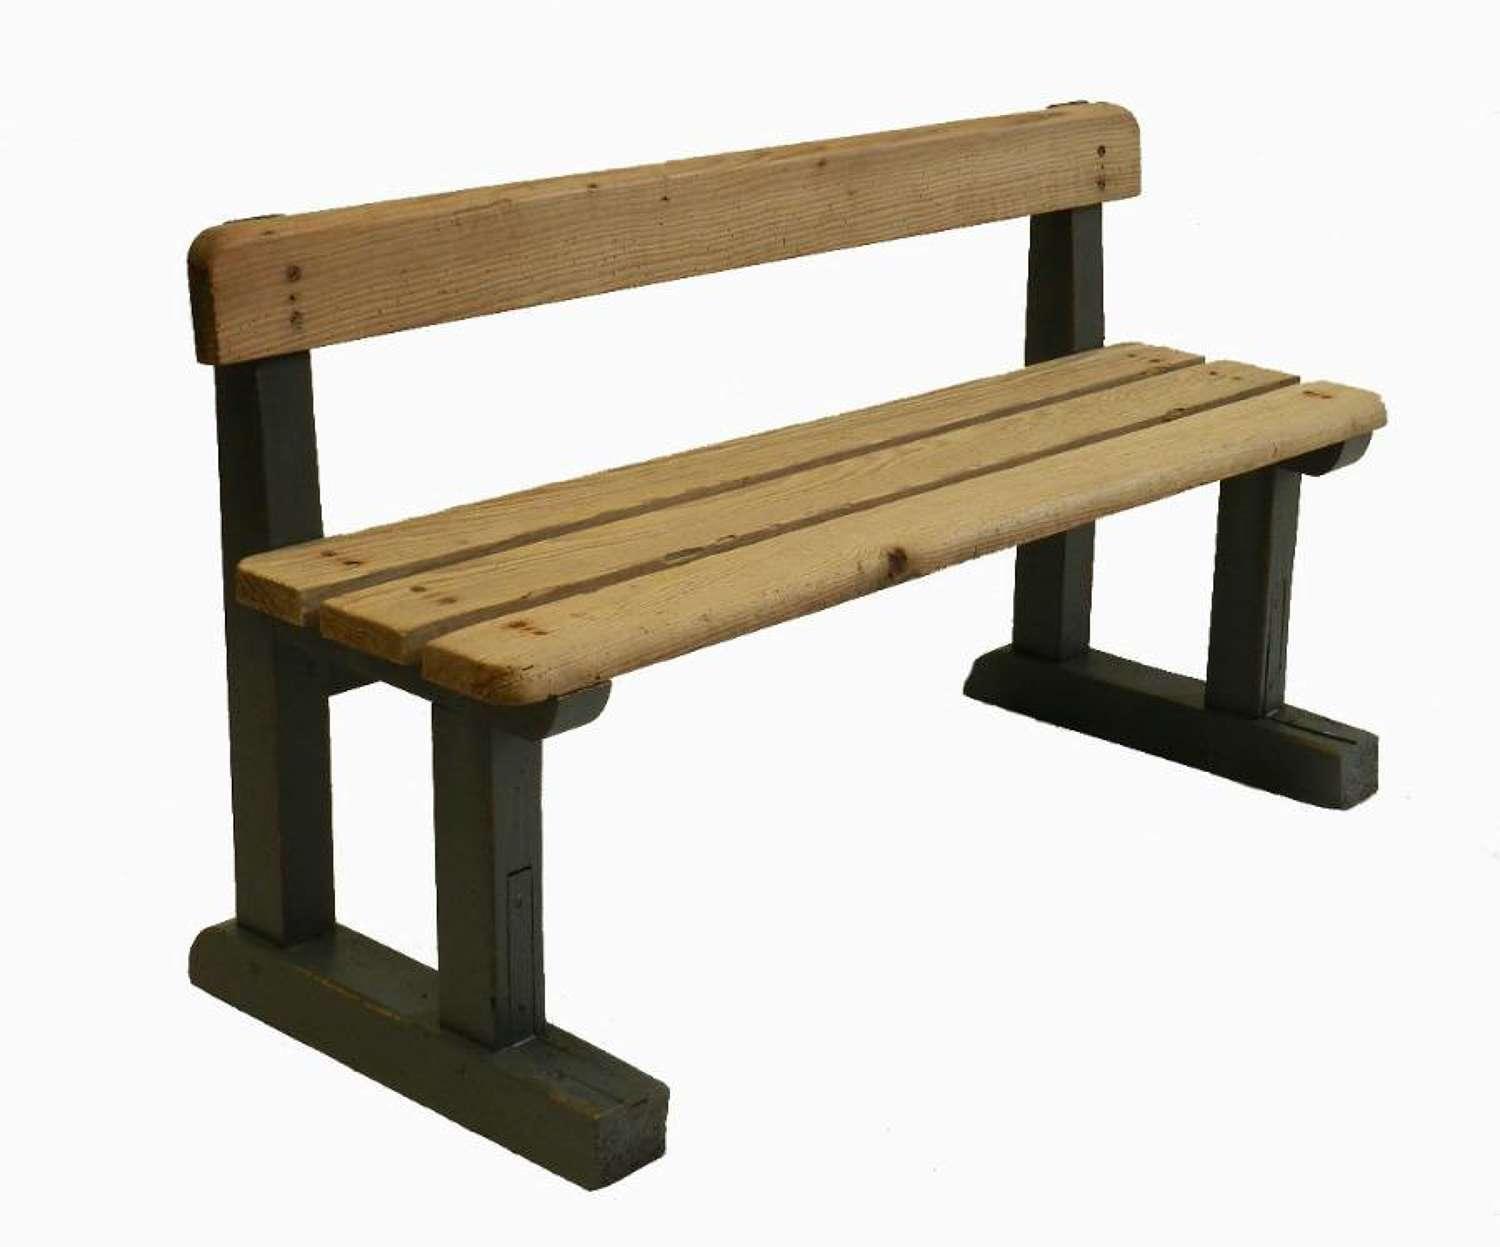 Bleached & Painted diminutive French Harvest Bench Garden Childrens Seat